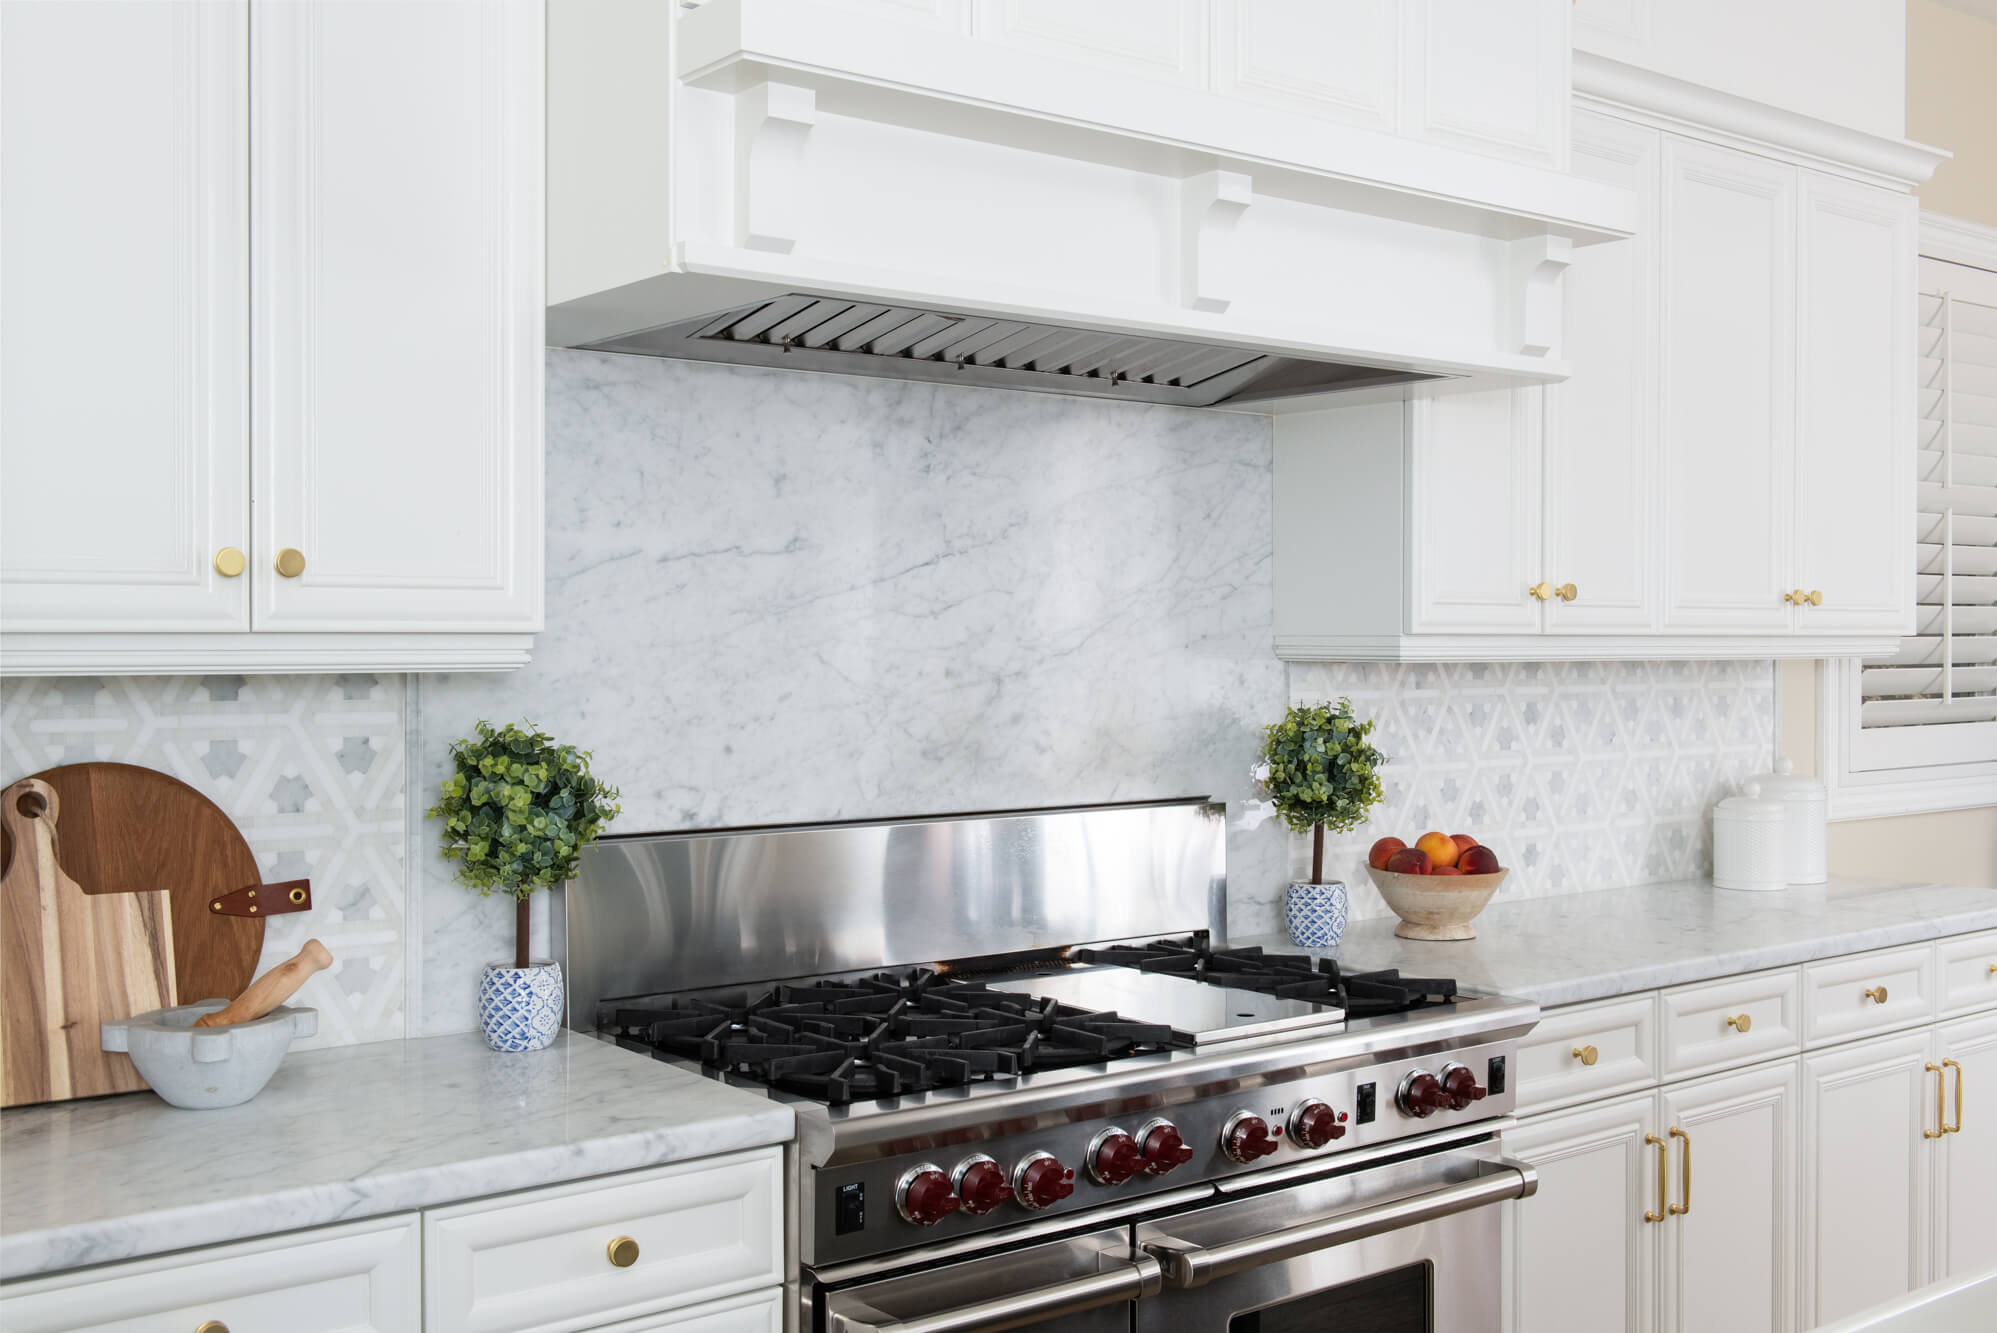 Geometric Marble Backsplash in Kitchen Remodel With Accent